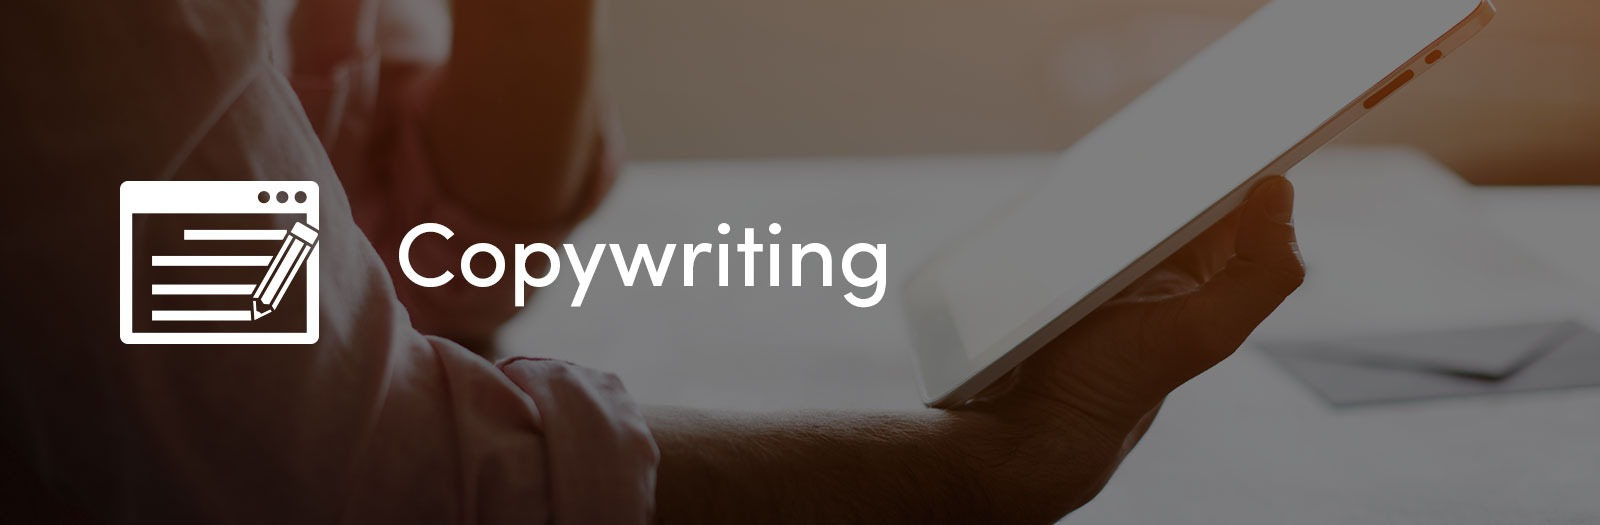 Copywriting for websites cardiff